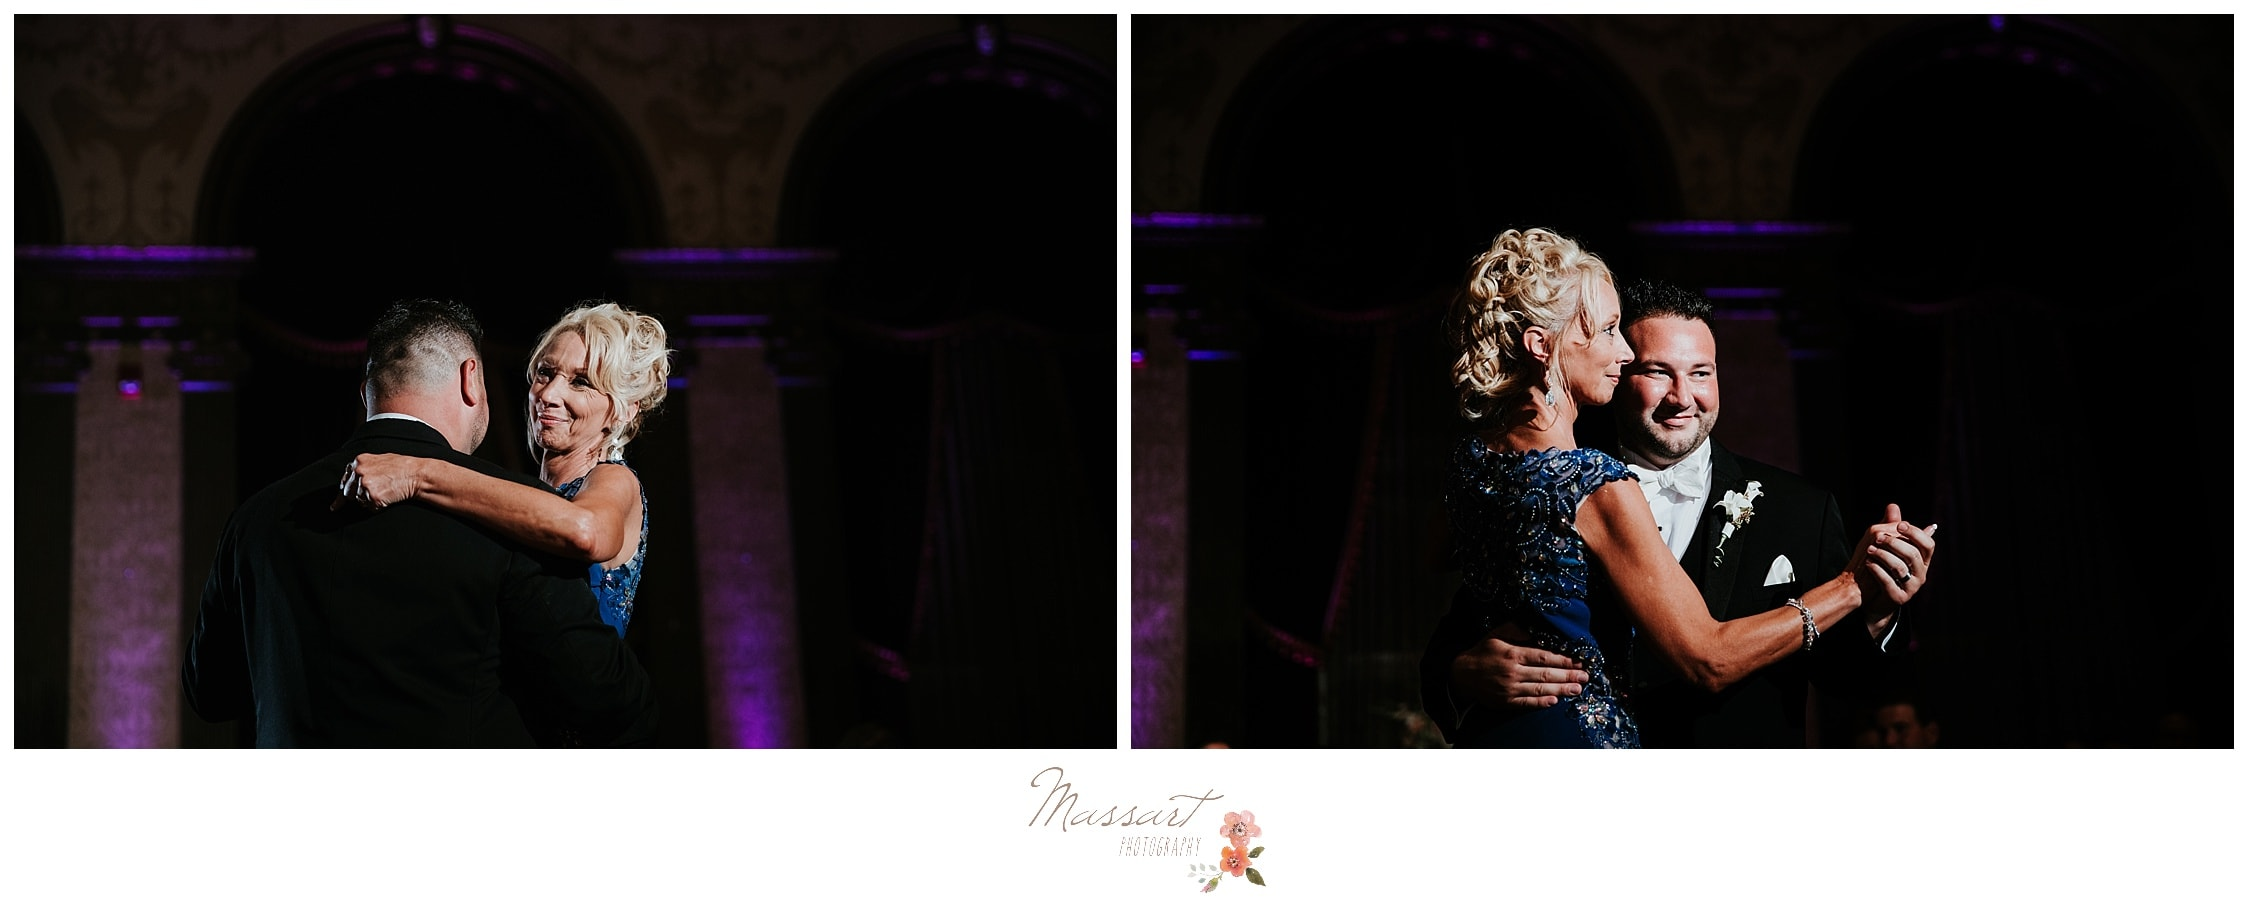 Mother and son dance during wedding reception photographed by Massart Photography RI